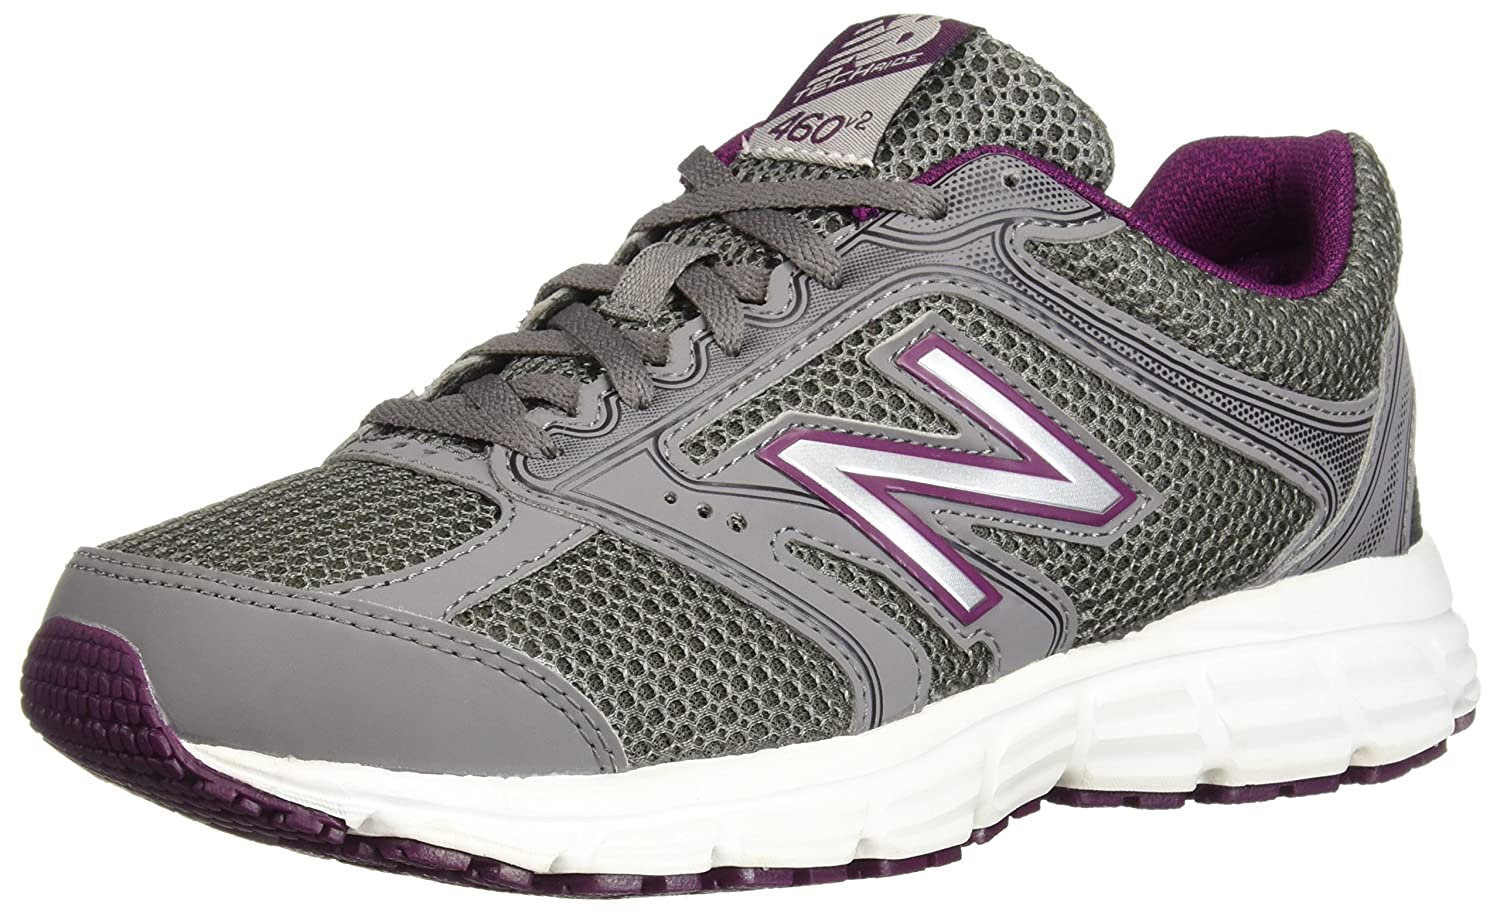 New Balance Women's 460v2 Cushioning B01N9LCB1C 10 W US|Grey